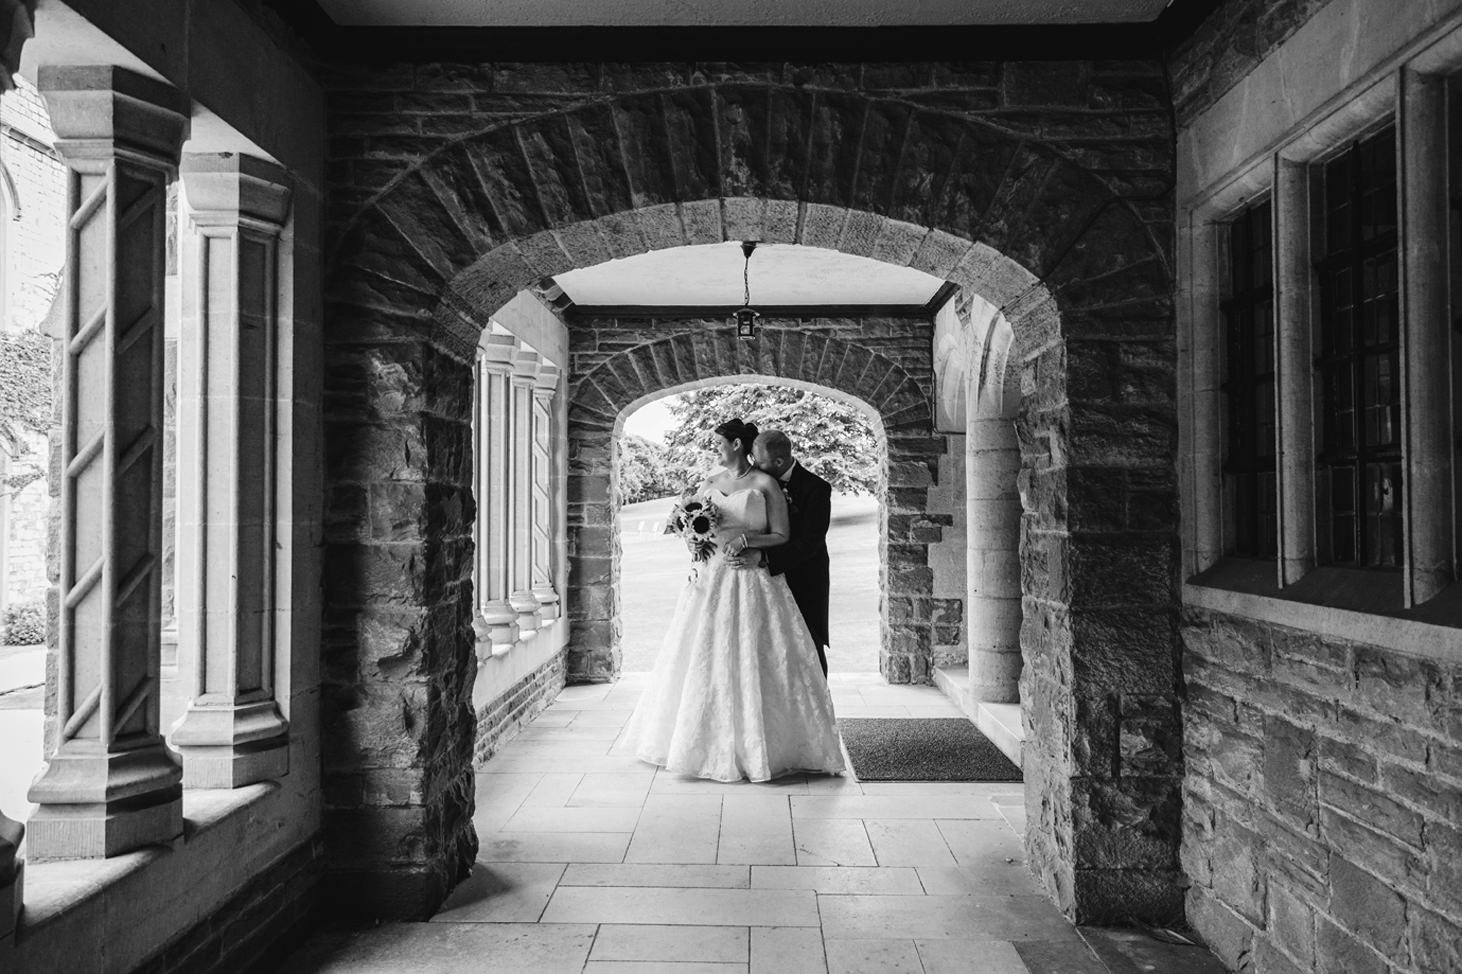 Wycombe Abbey wedding photography bride and groom together under archway